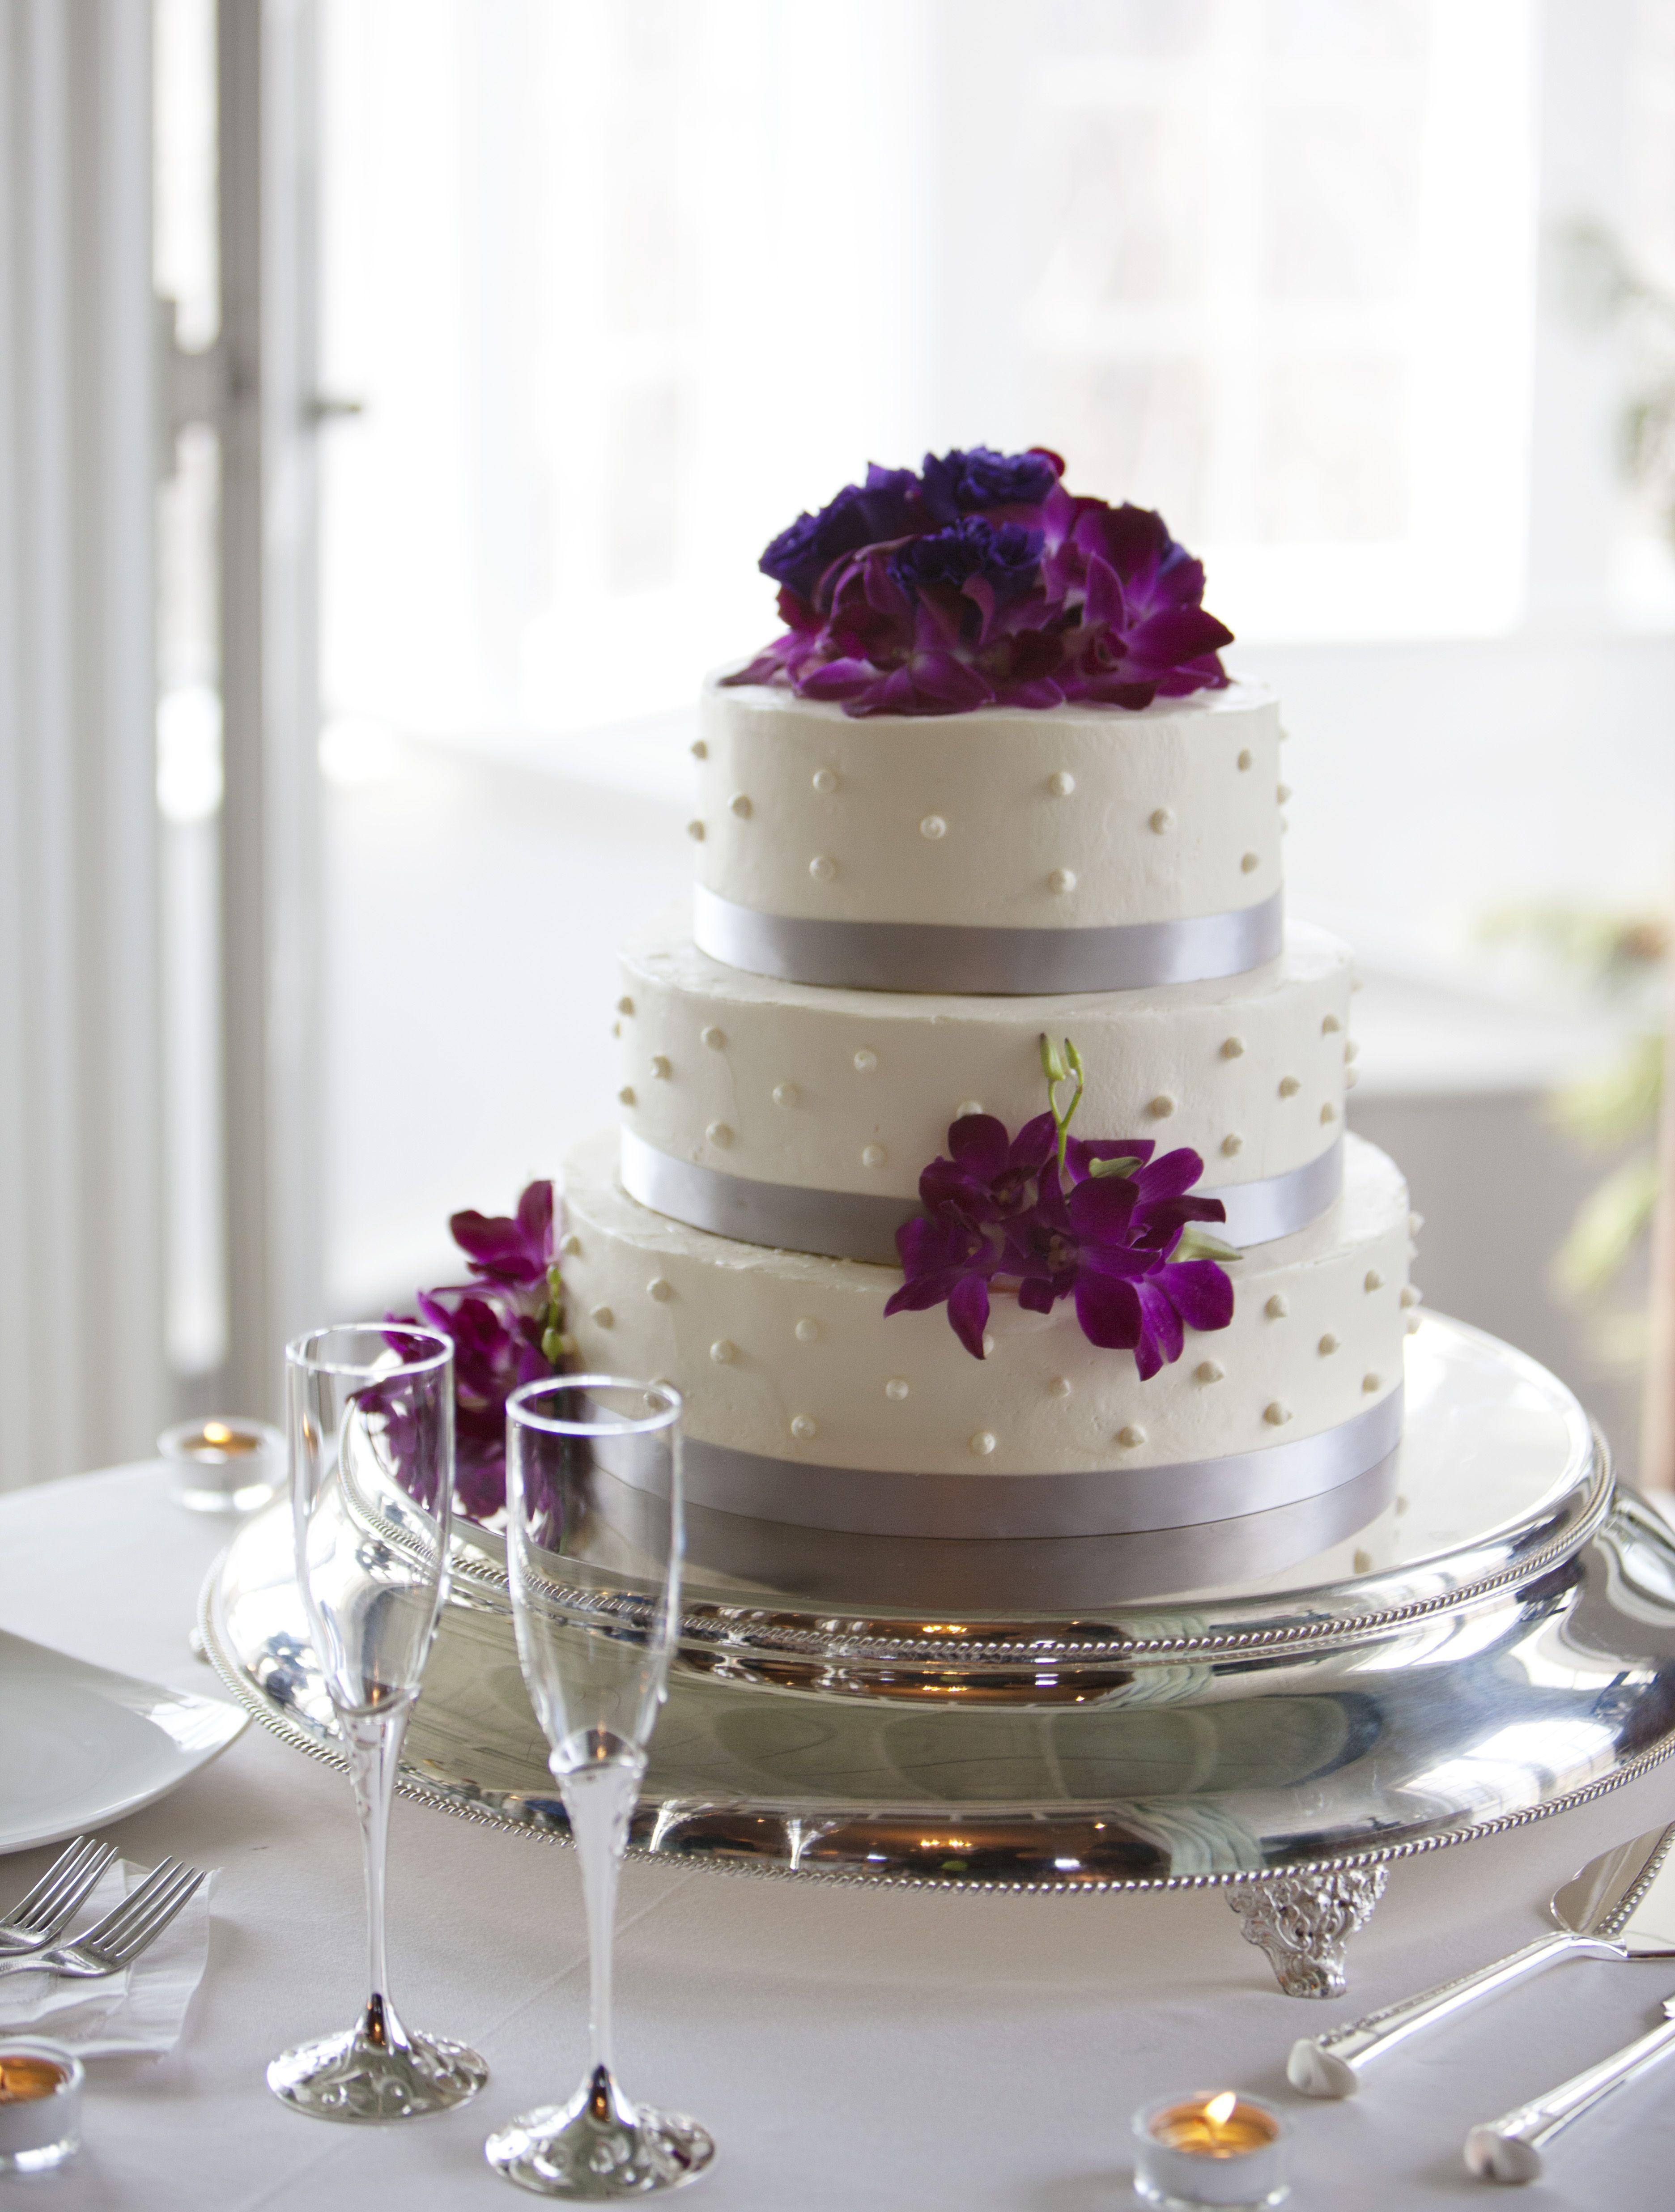 The smarter way to wed photo credit charlottesville and wedding cake